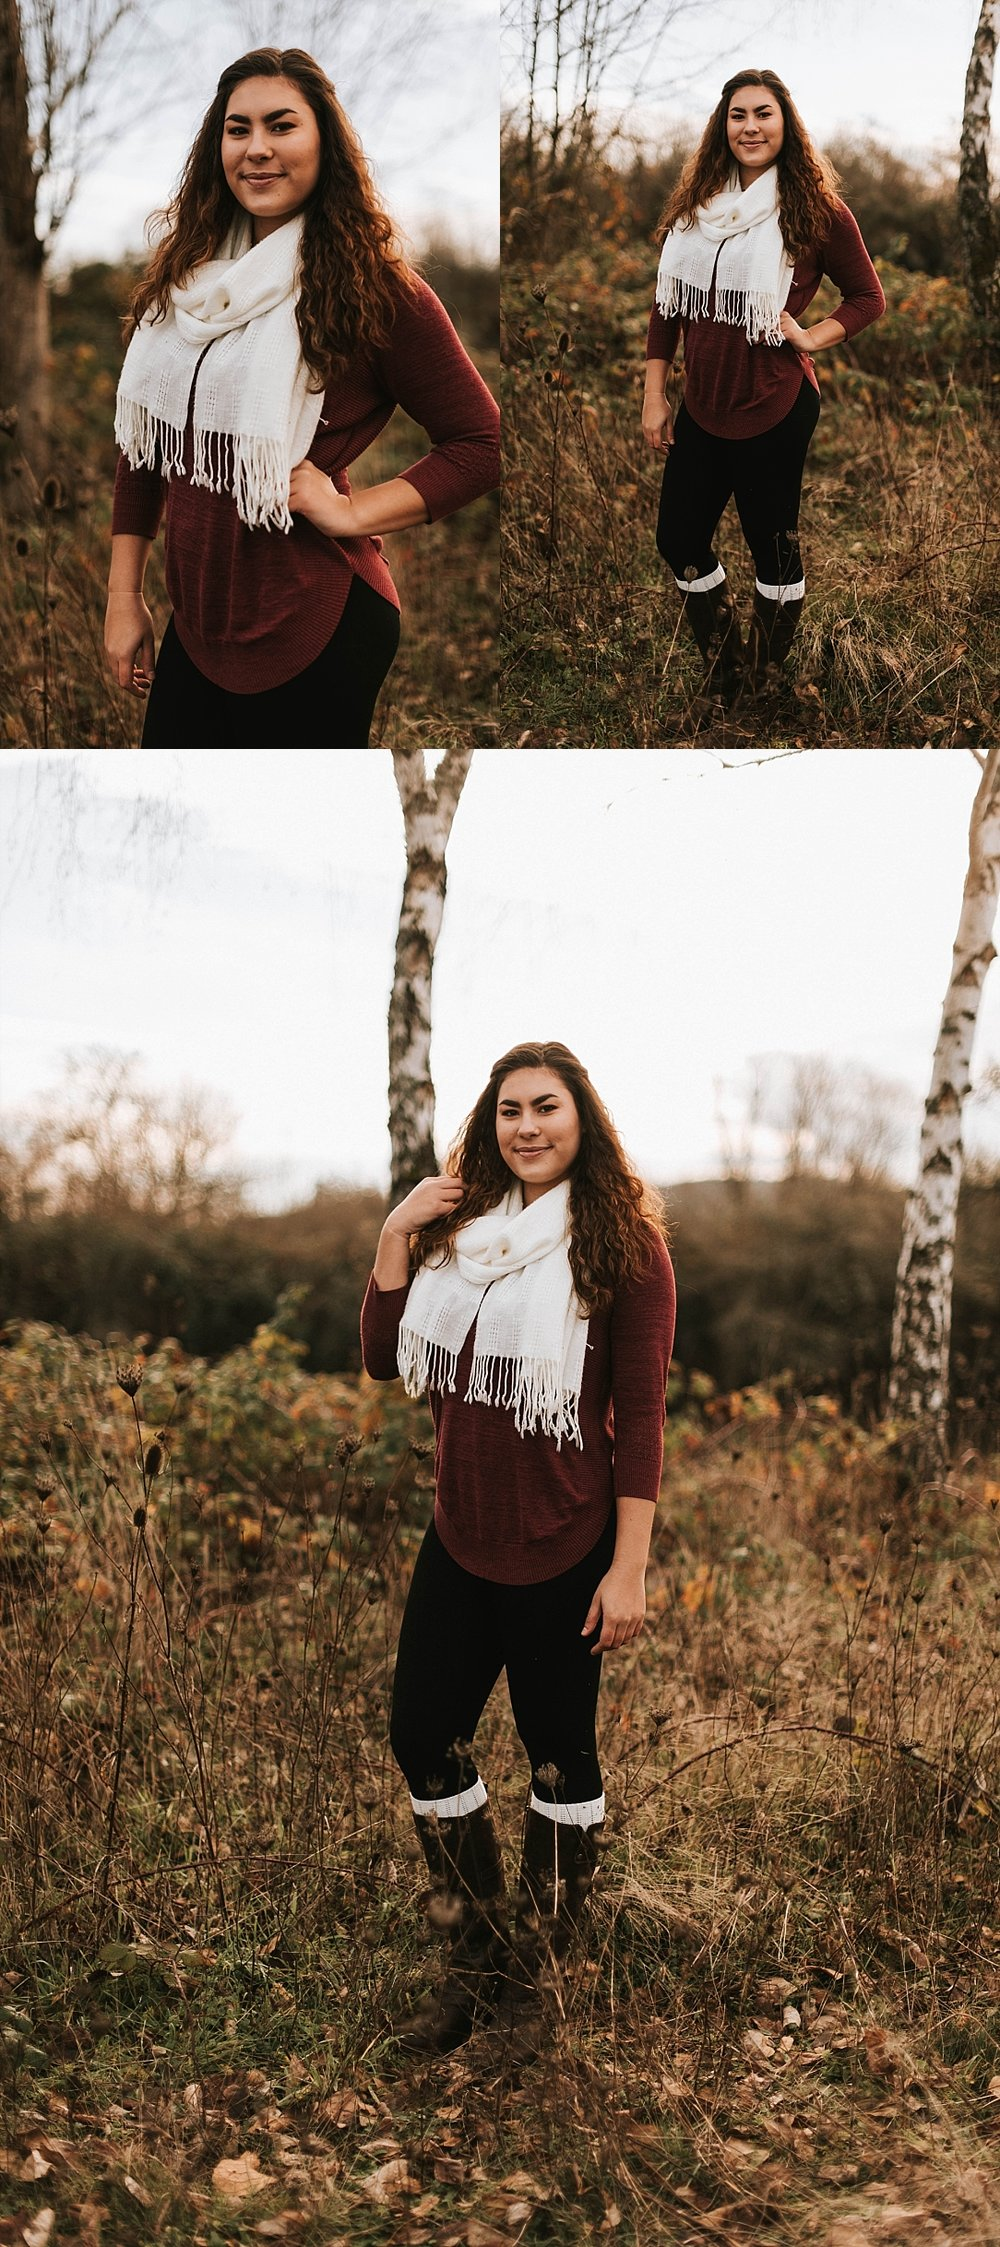 nbp winter senior shoot